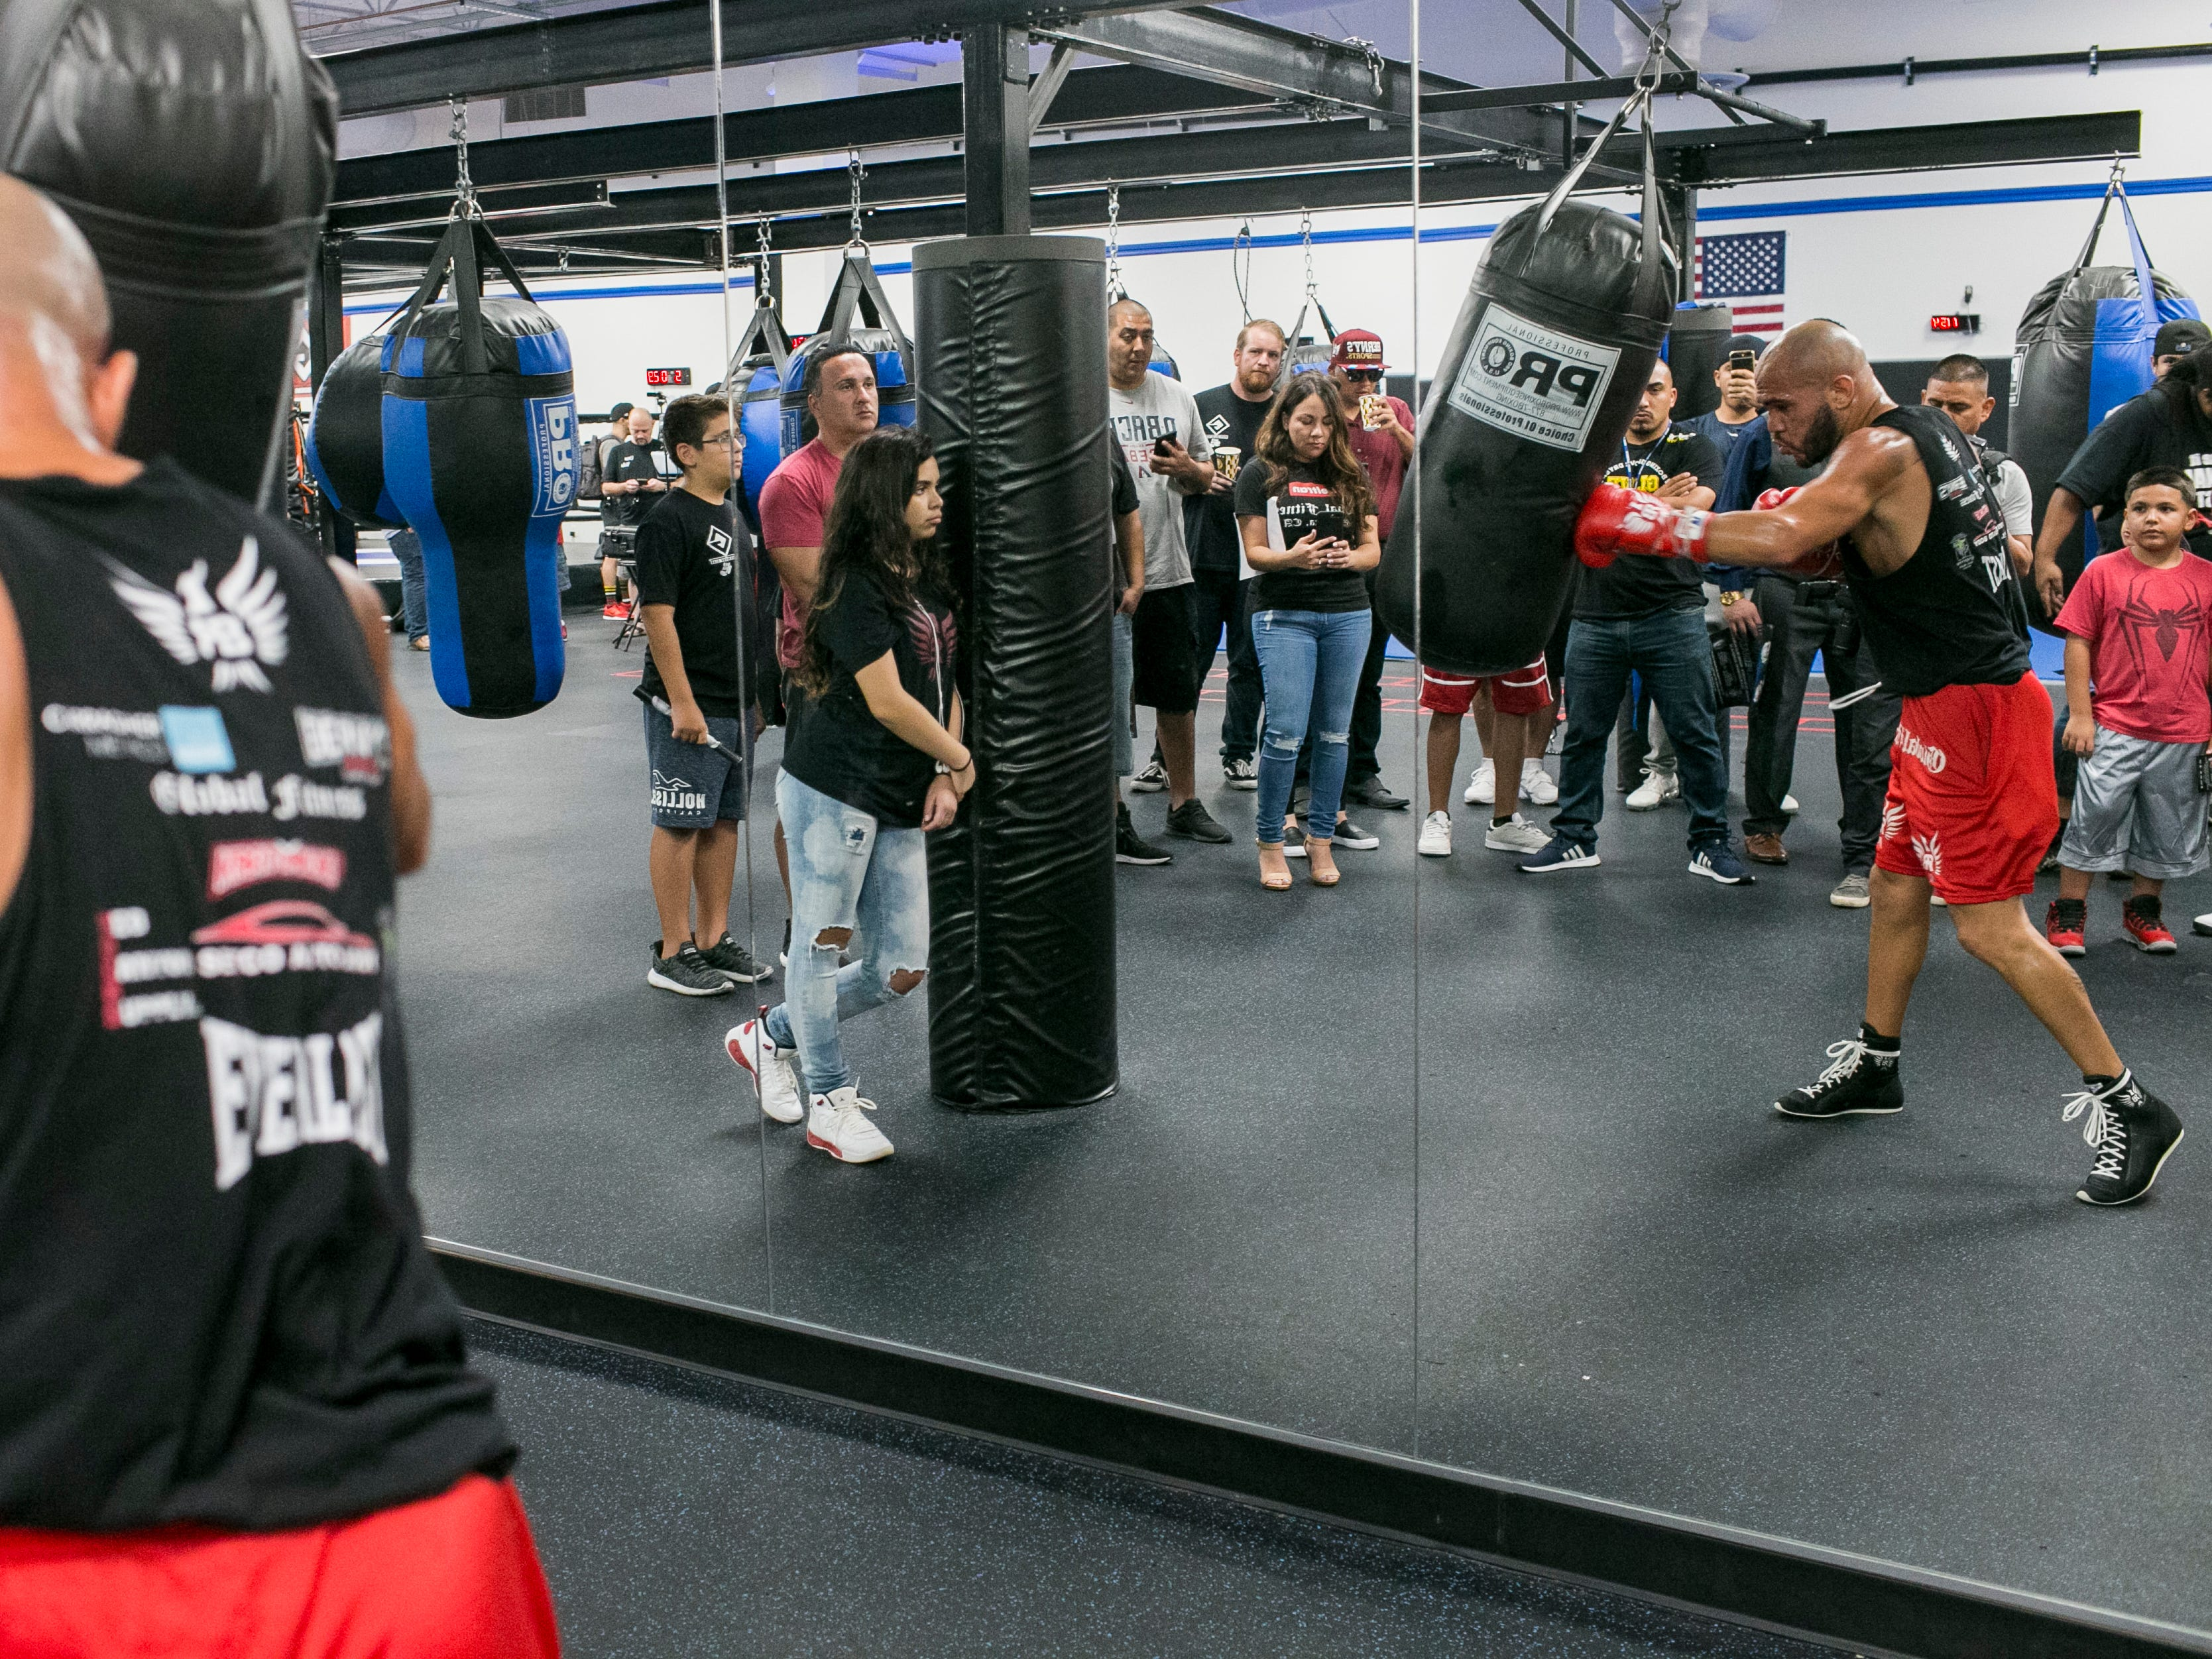 Ray Beltran, the World Boxing Organization World Lightweight champion, hits a punching bag at a media day event at Gent's Boxing Club in Glendale, Ariz. on Sat. Aug 4, 2018.